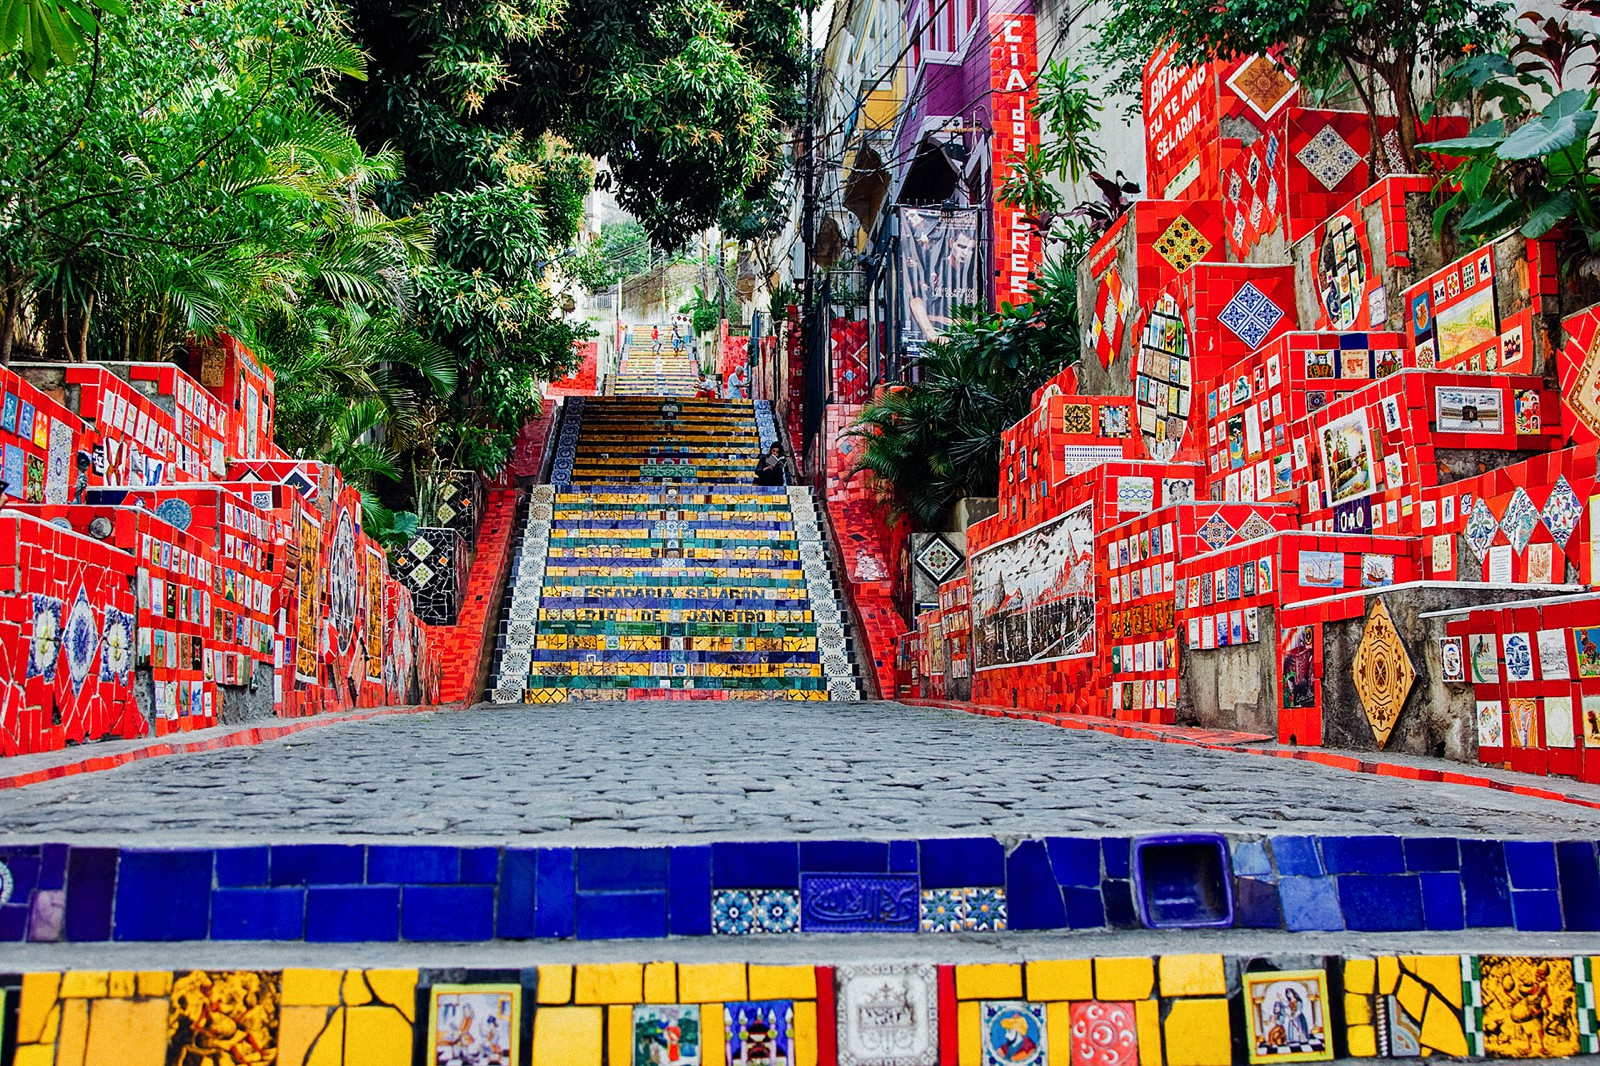 10 Fantastic Sights You Have To See In Rio de Janeiro, Brazil (1)